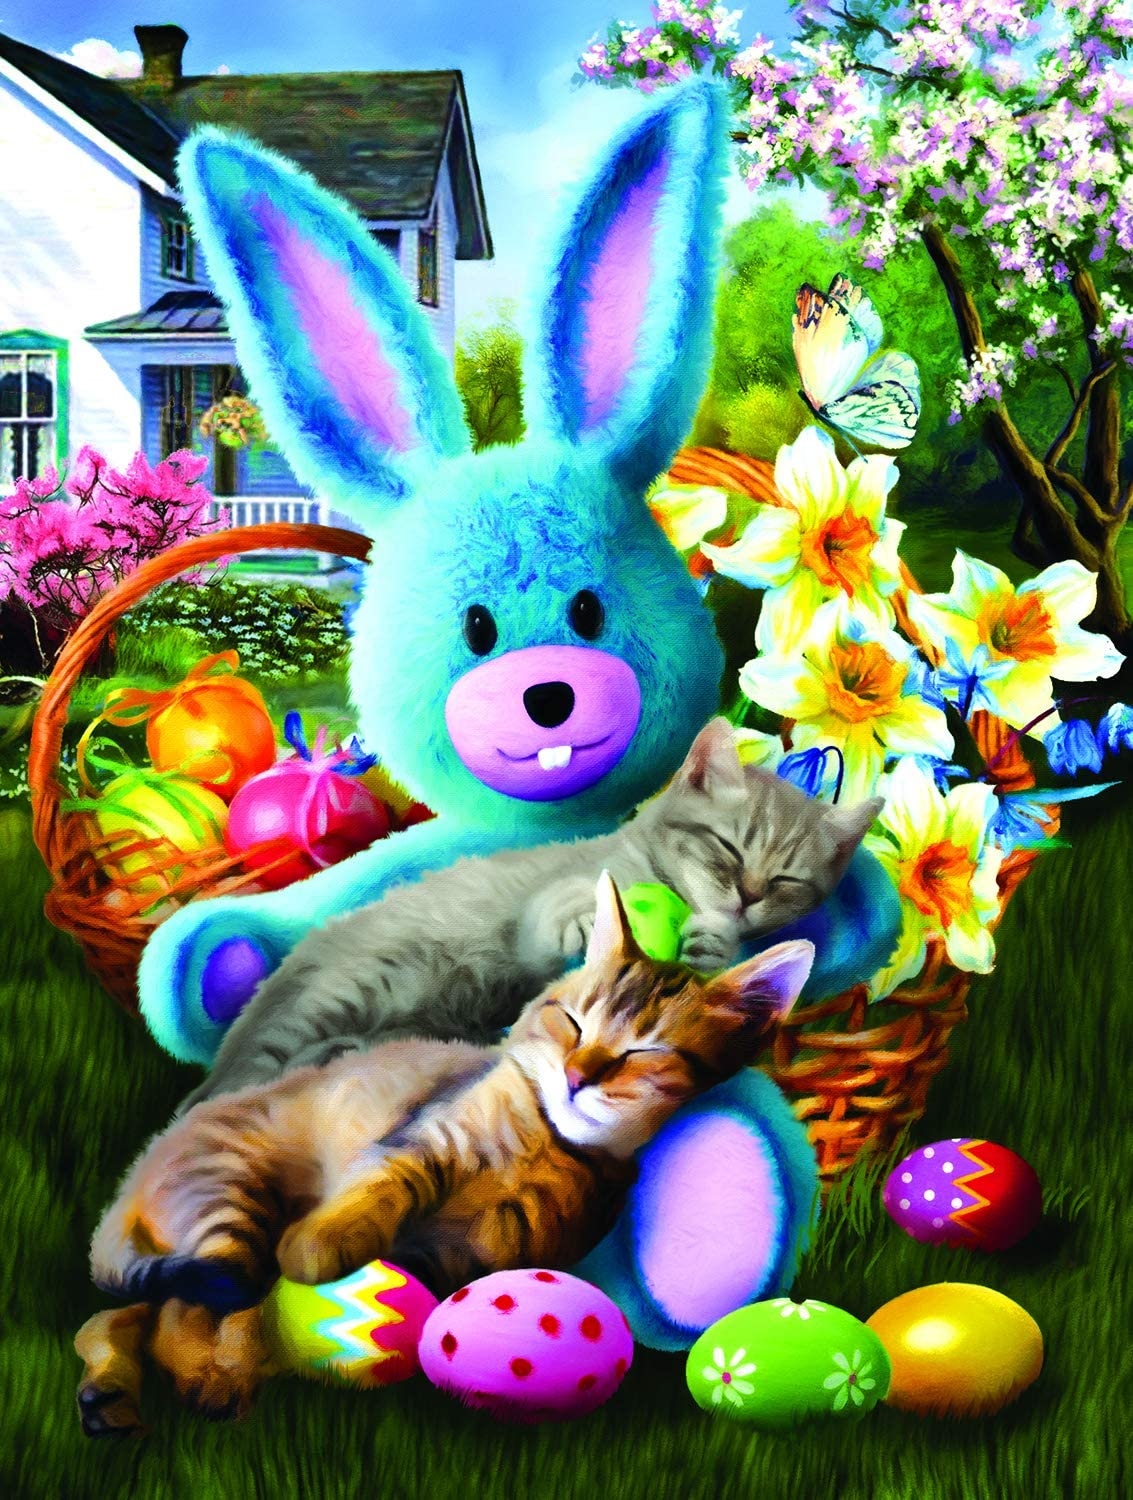 Easter Buddies 500 pc Jigsaw Puzzle by SUNSOUT INC